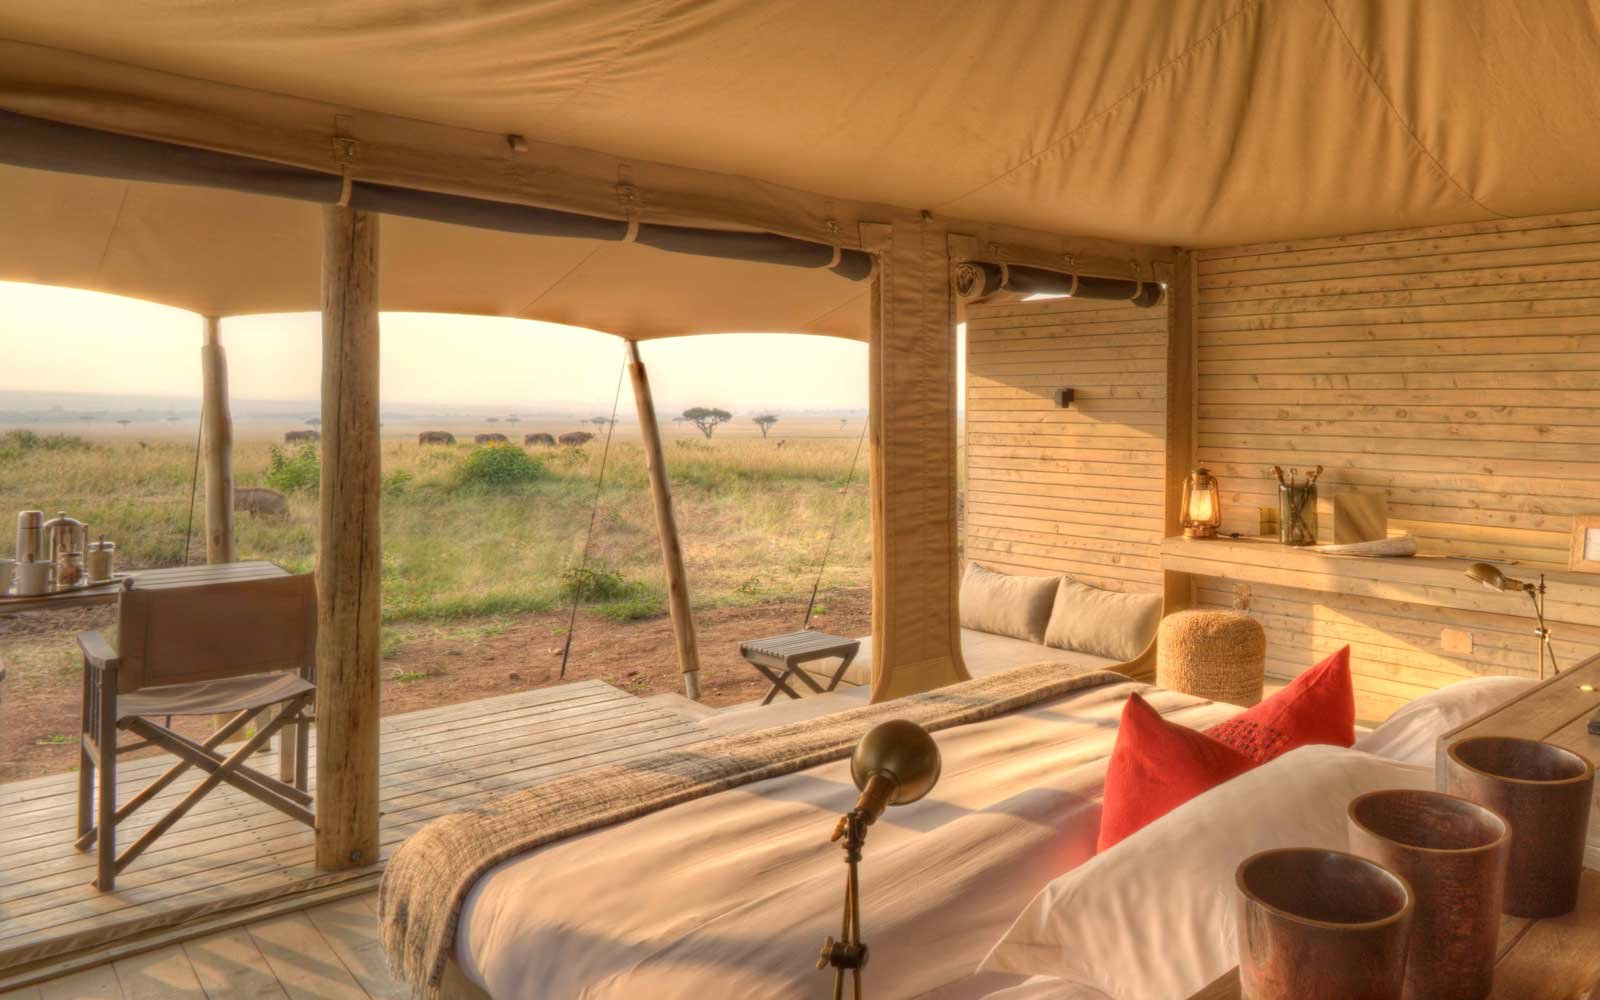 The 2017 World S Best Safari Lodges In Africa Travel